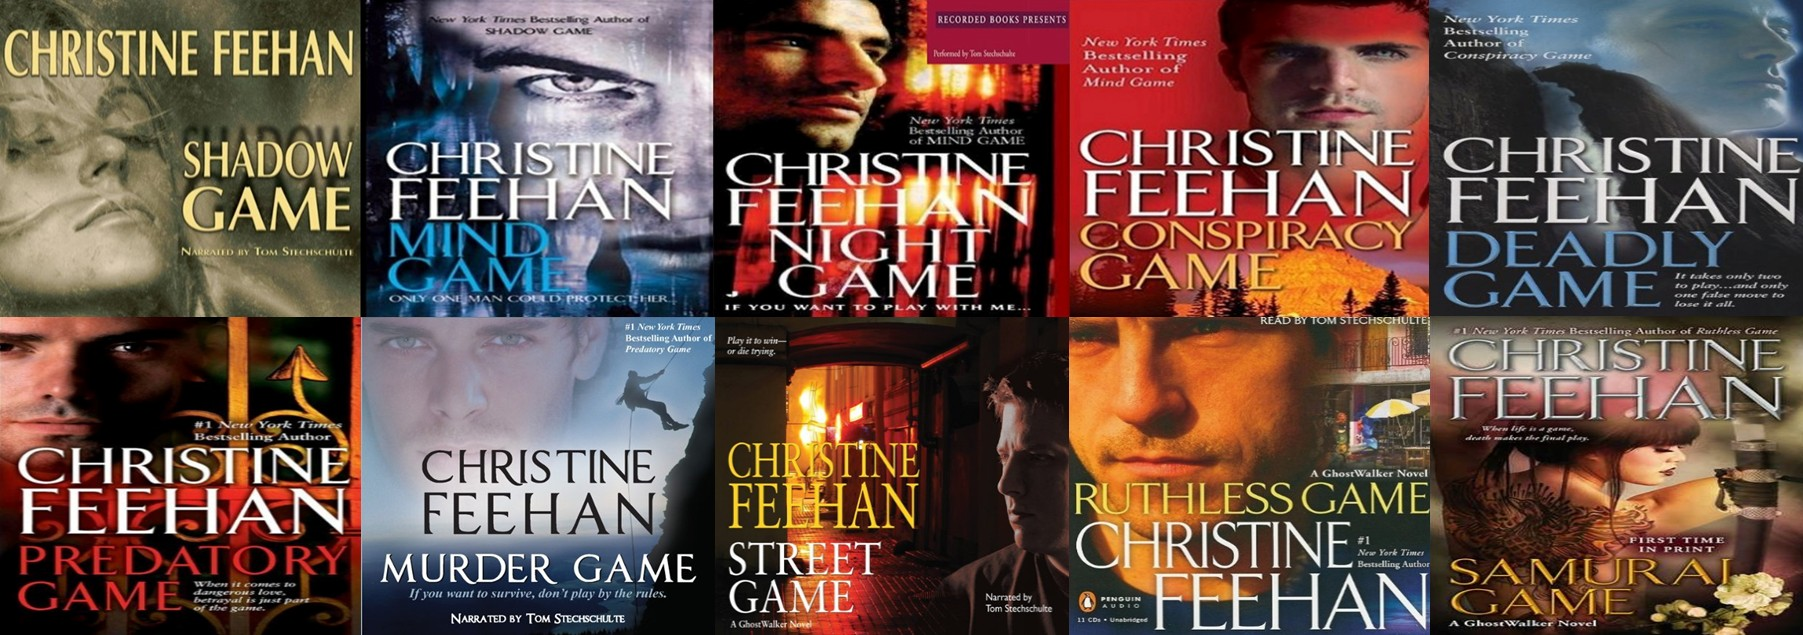 spirit bound christine feehan pdf free download